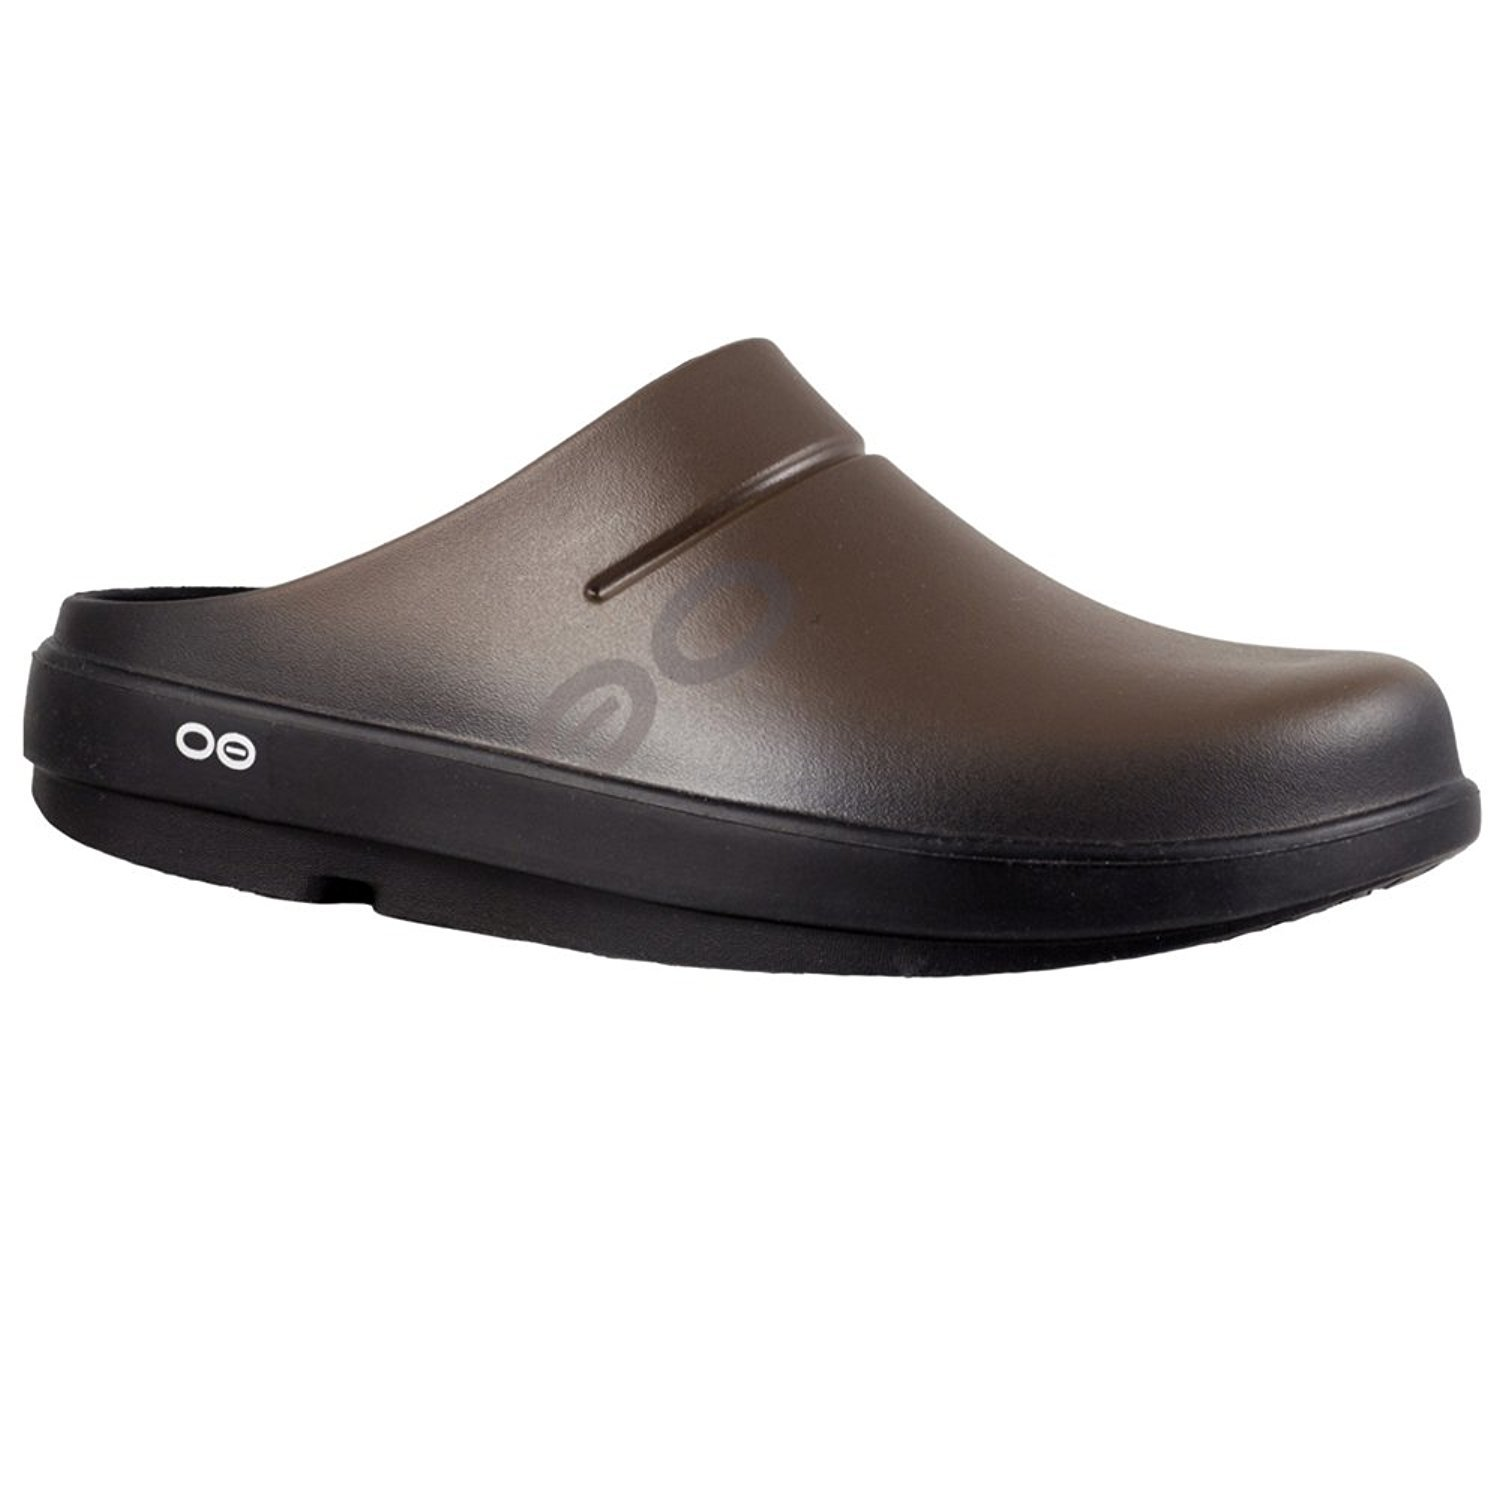 OOFOS Unisex OOcloog Sport Clog Mule, Brown, 13 B(M) US Womens/11 D(M) US Men by OOFOS